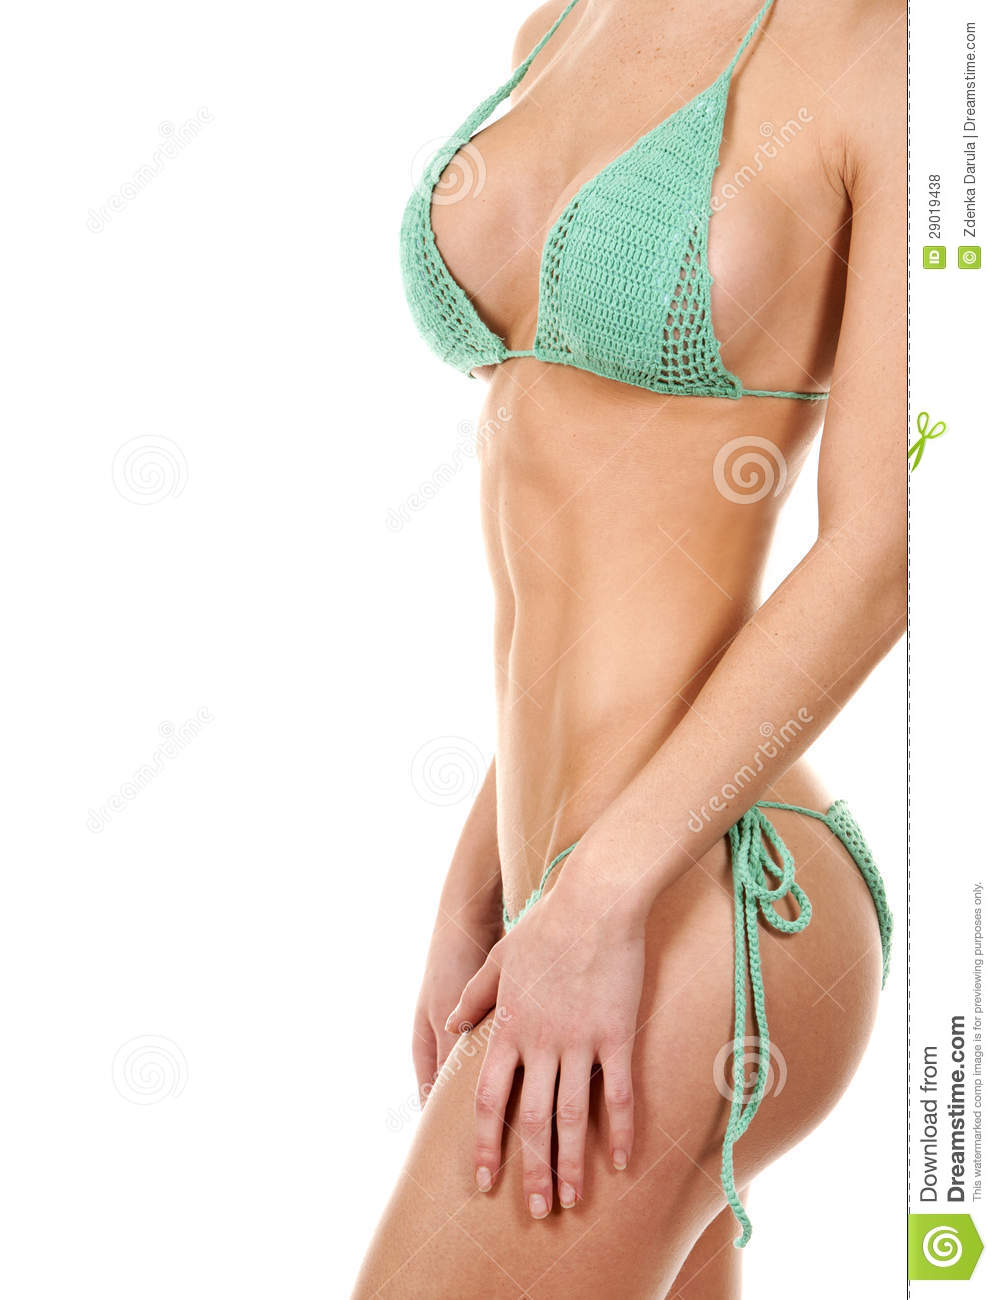 Green Bikini Royalty Free Stock Photos - Image: 29019438